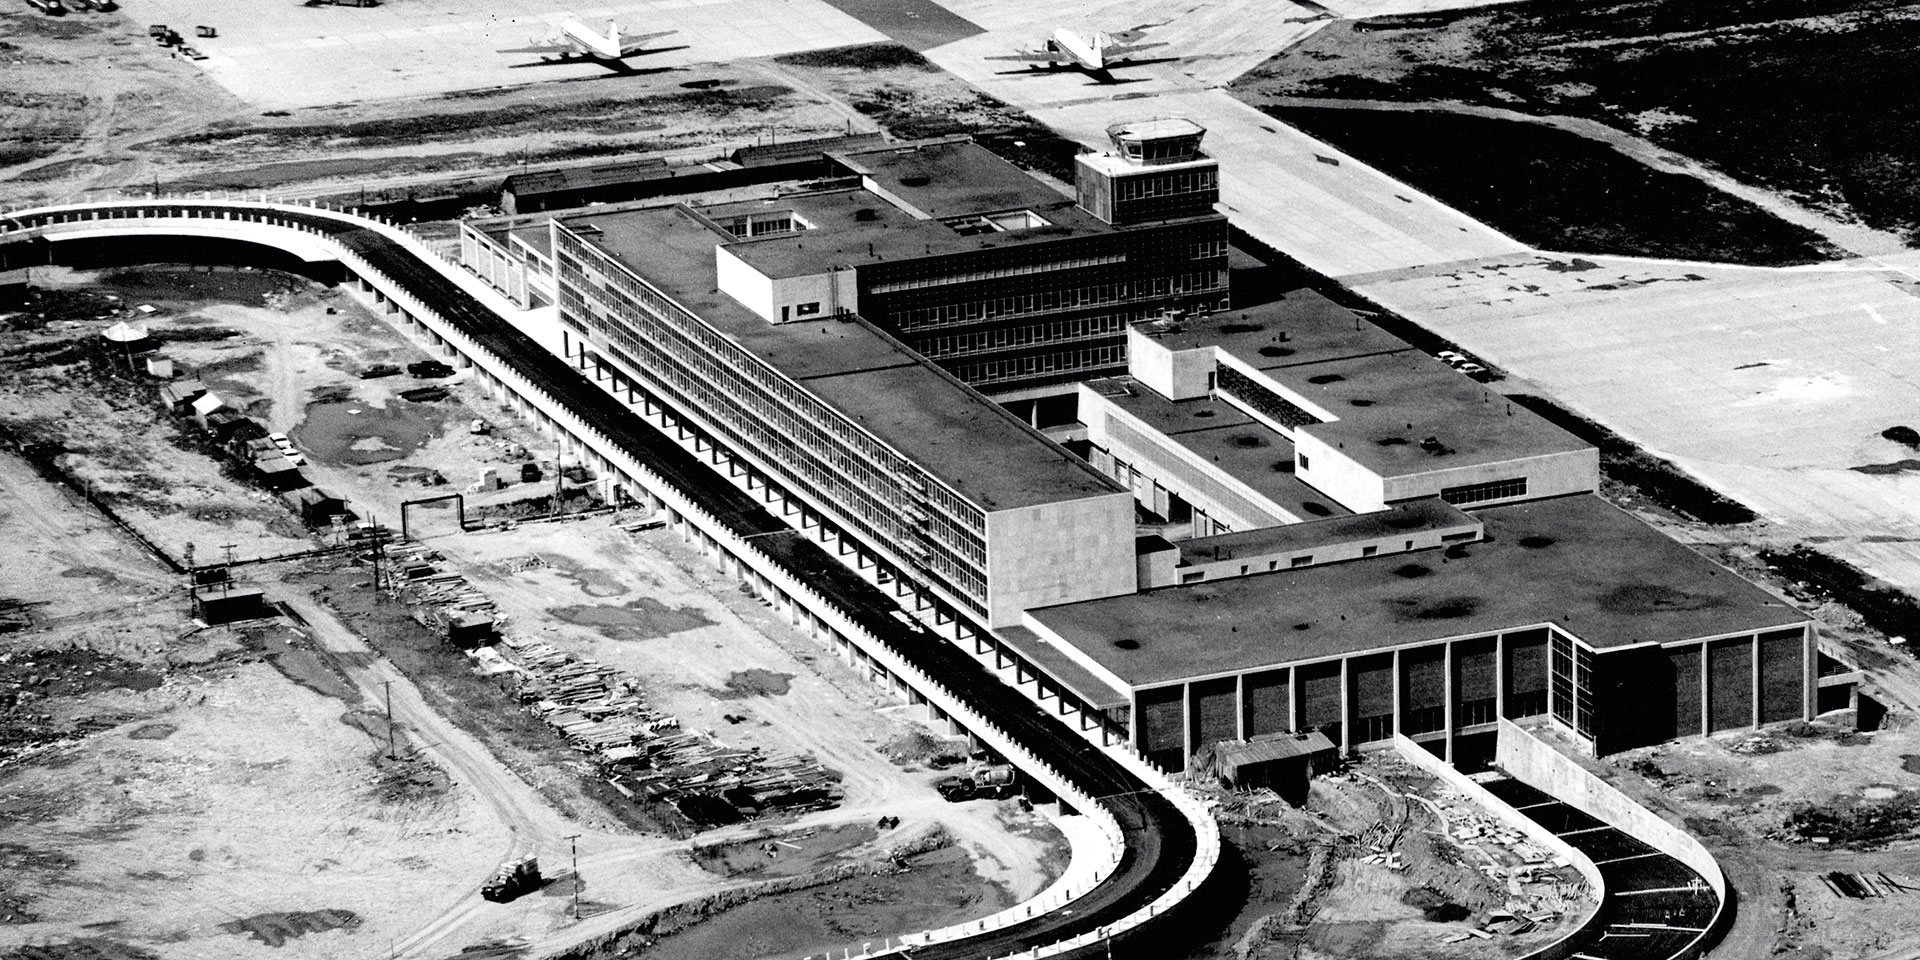 Montreal Airport 1959 Black and White